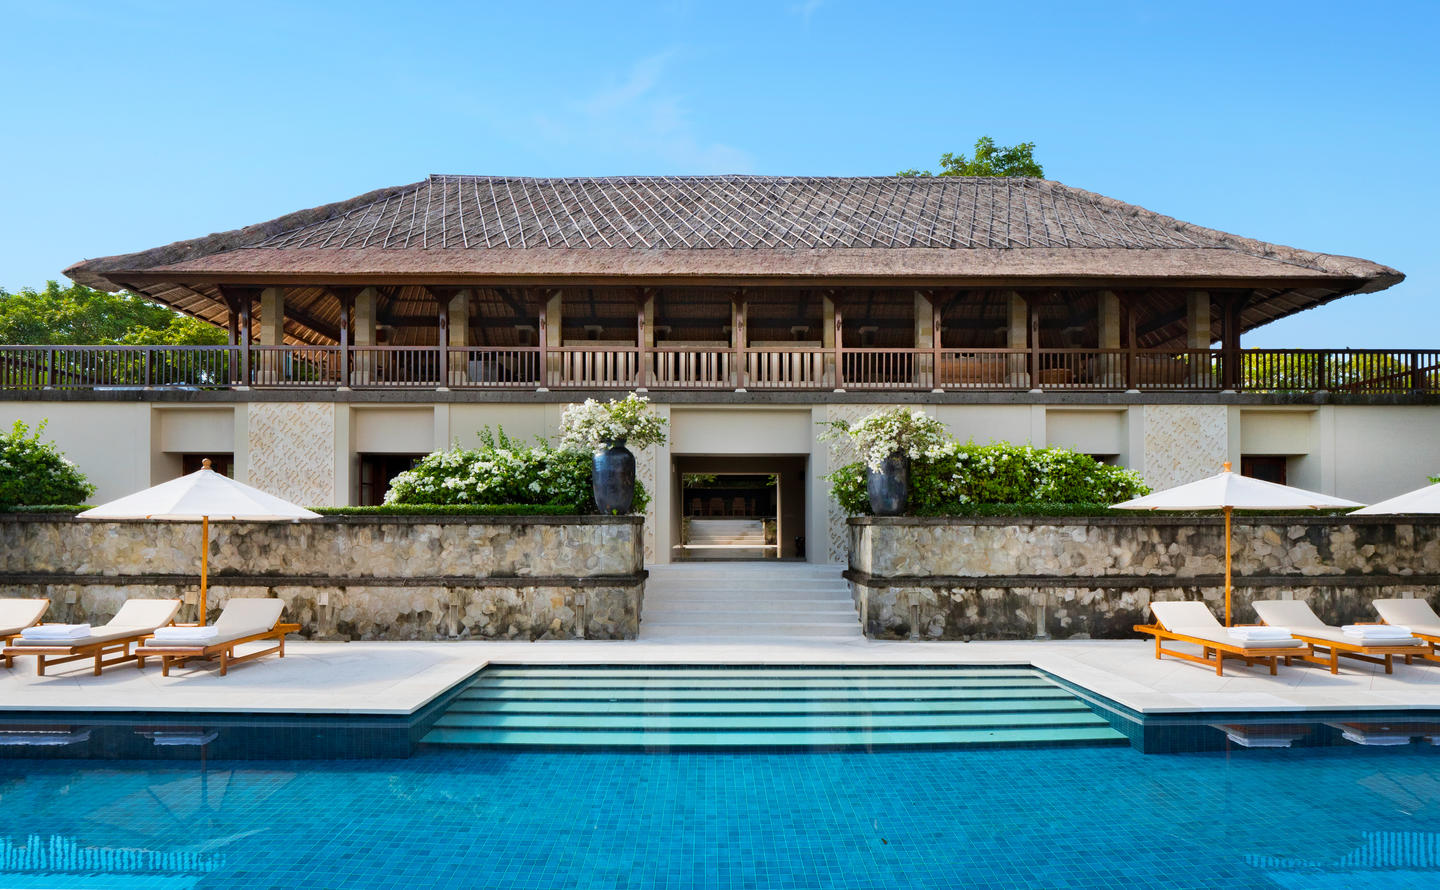 Aman Villas at Nusa Dua, Indonesia - Villa 1 Swimming Pool